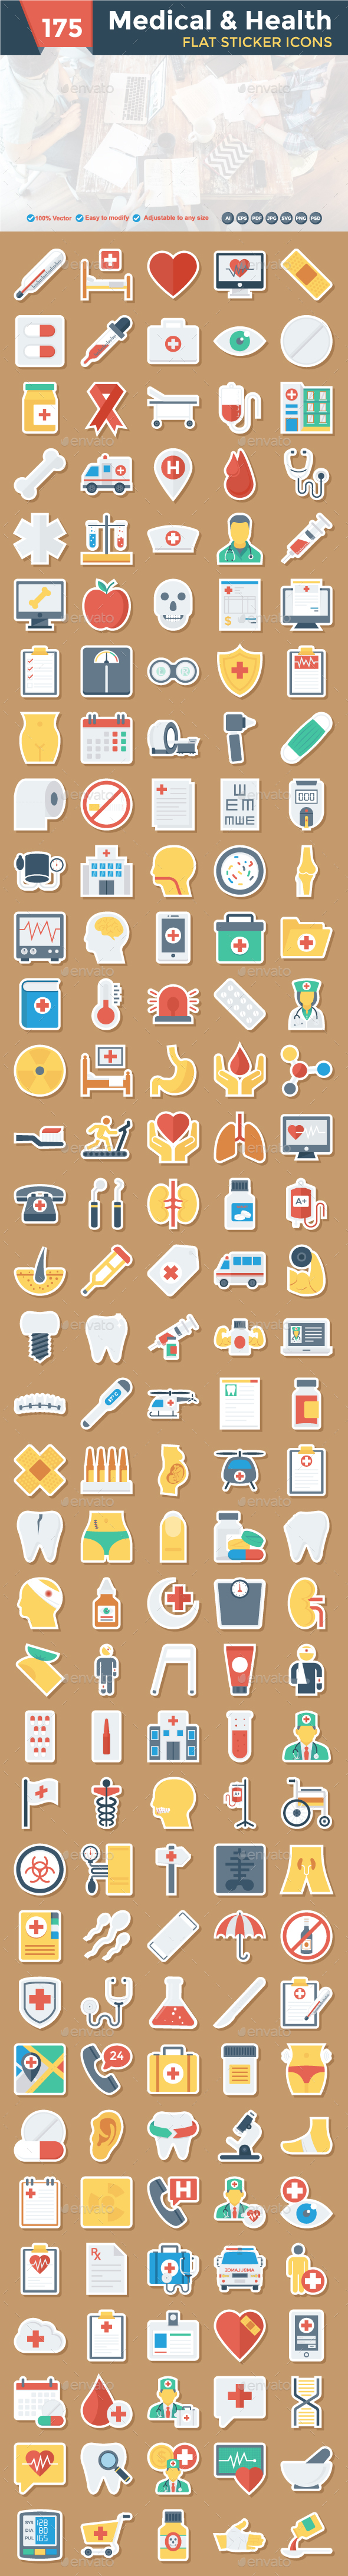 Medical & Health Flat Paper Icon - Icons